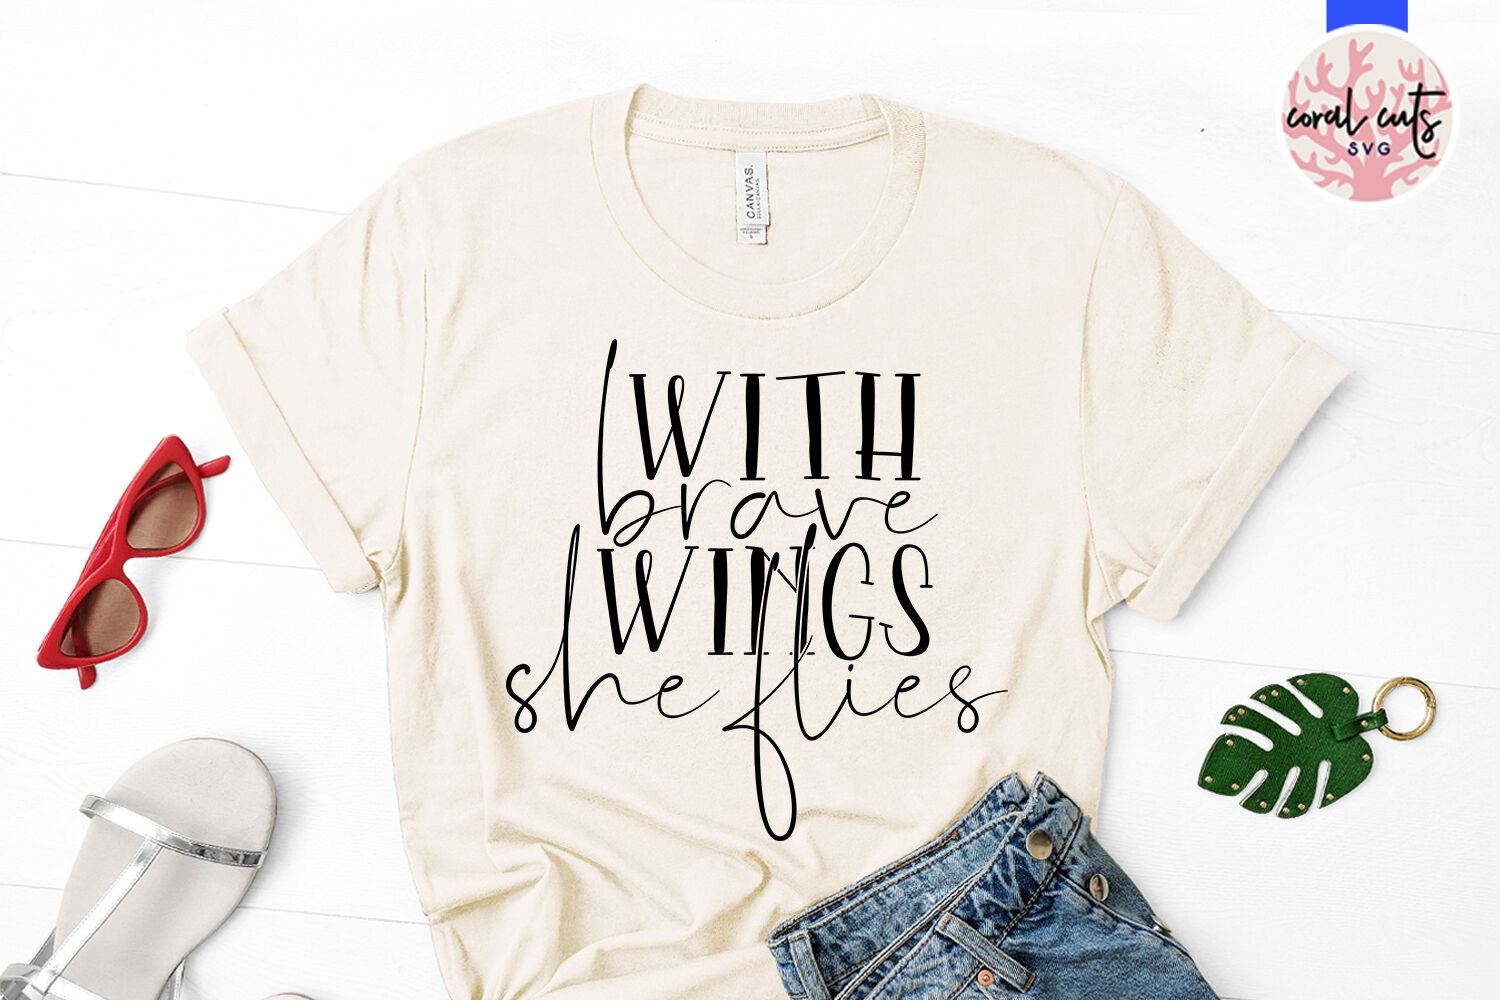 With Brave Wings She Flies Women Empowerment Svg Eps Dxf Png By